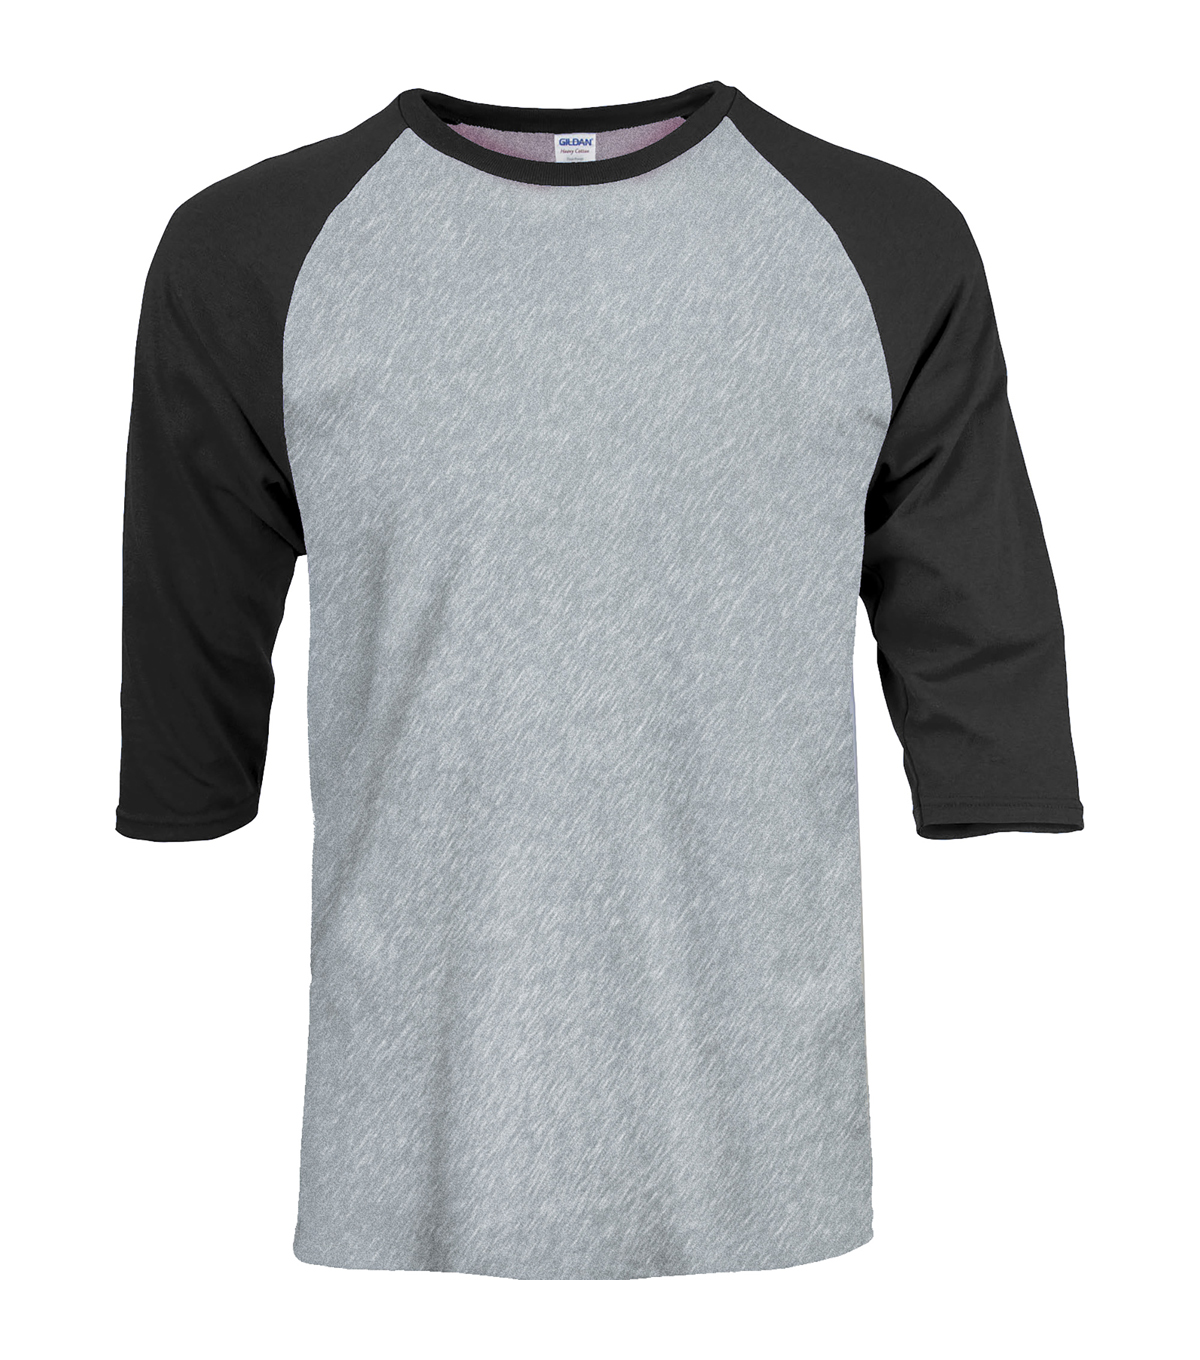 Gildan Large Adult Raglan Crew Sport T-Shirt, Grey-black